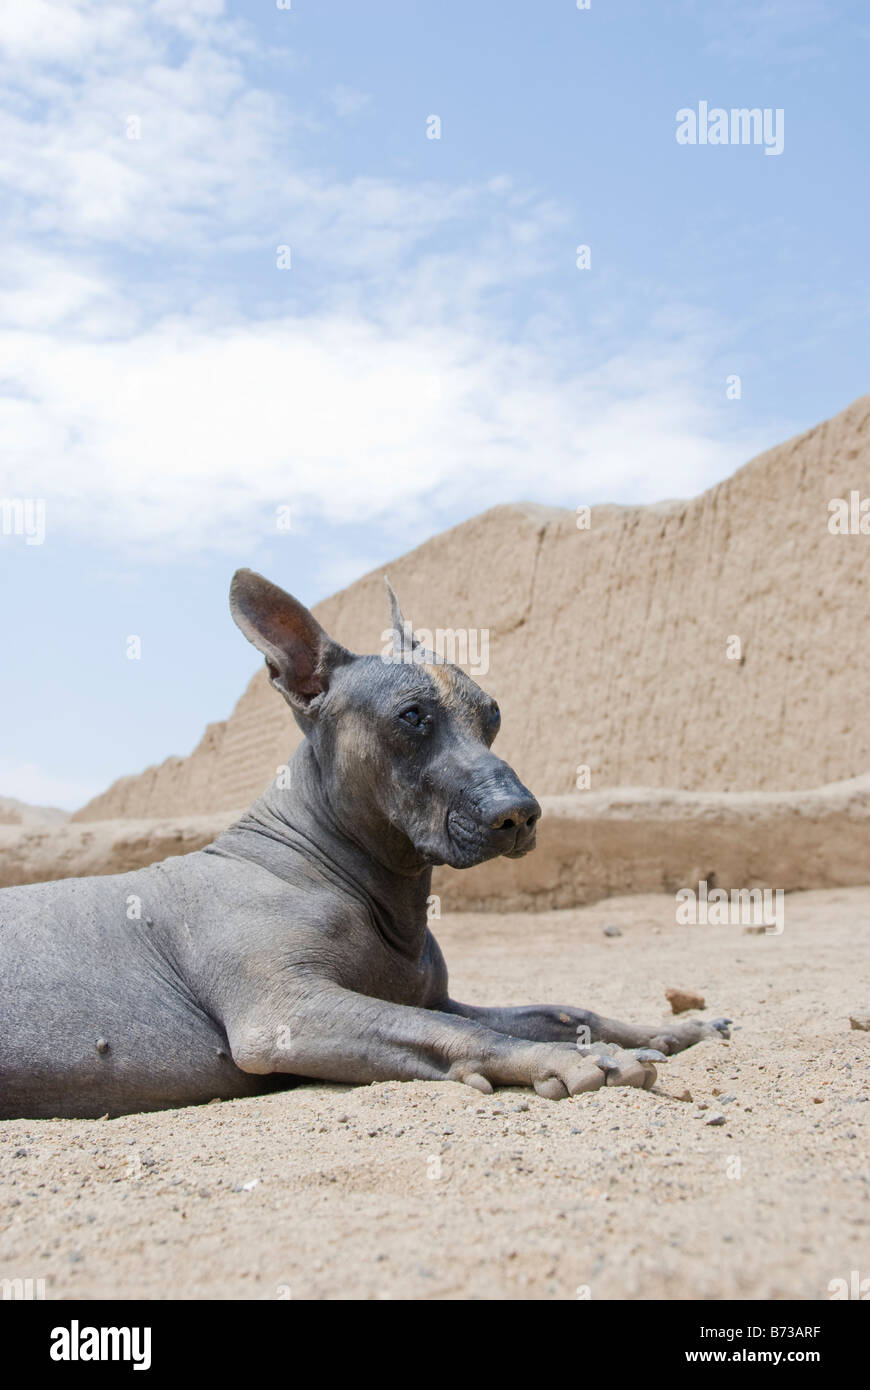 A Peruvian hairless dog relaxes in the desert near the Chan Chan ruins - Stock Image